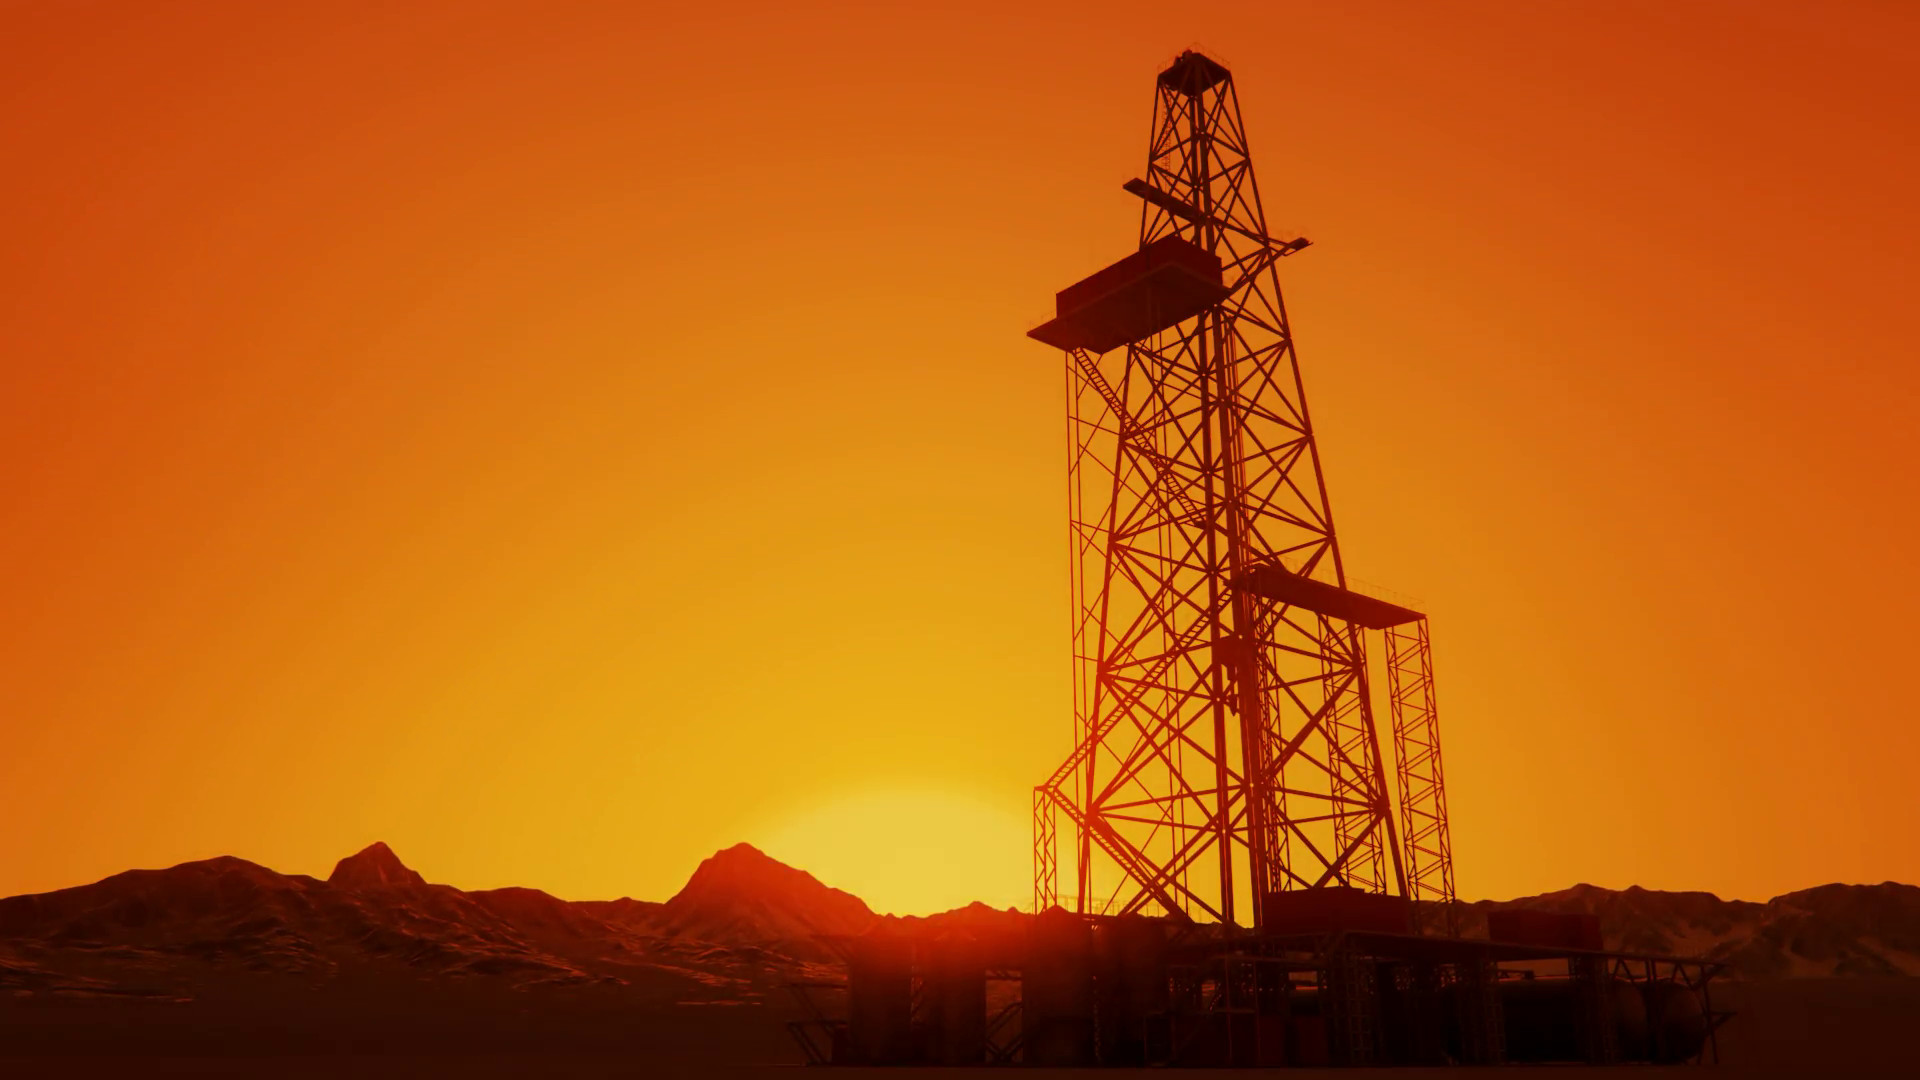 1920x1080 Drill Tower At Sunrise. Oil Rig Industry Drilling Derrick Stock Video  Footage - VideoBlocks